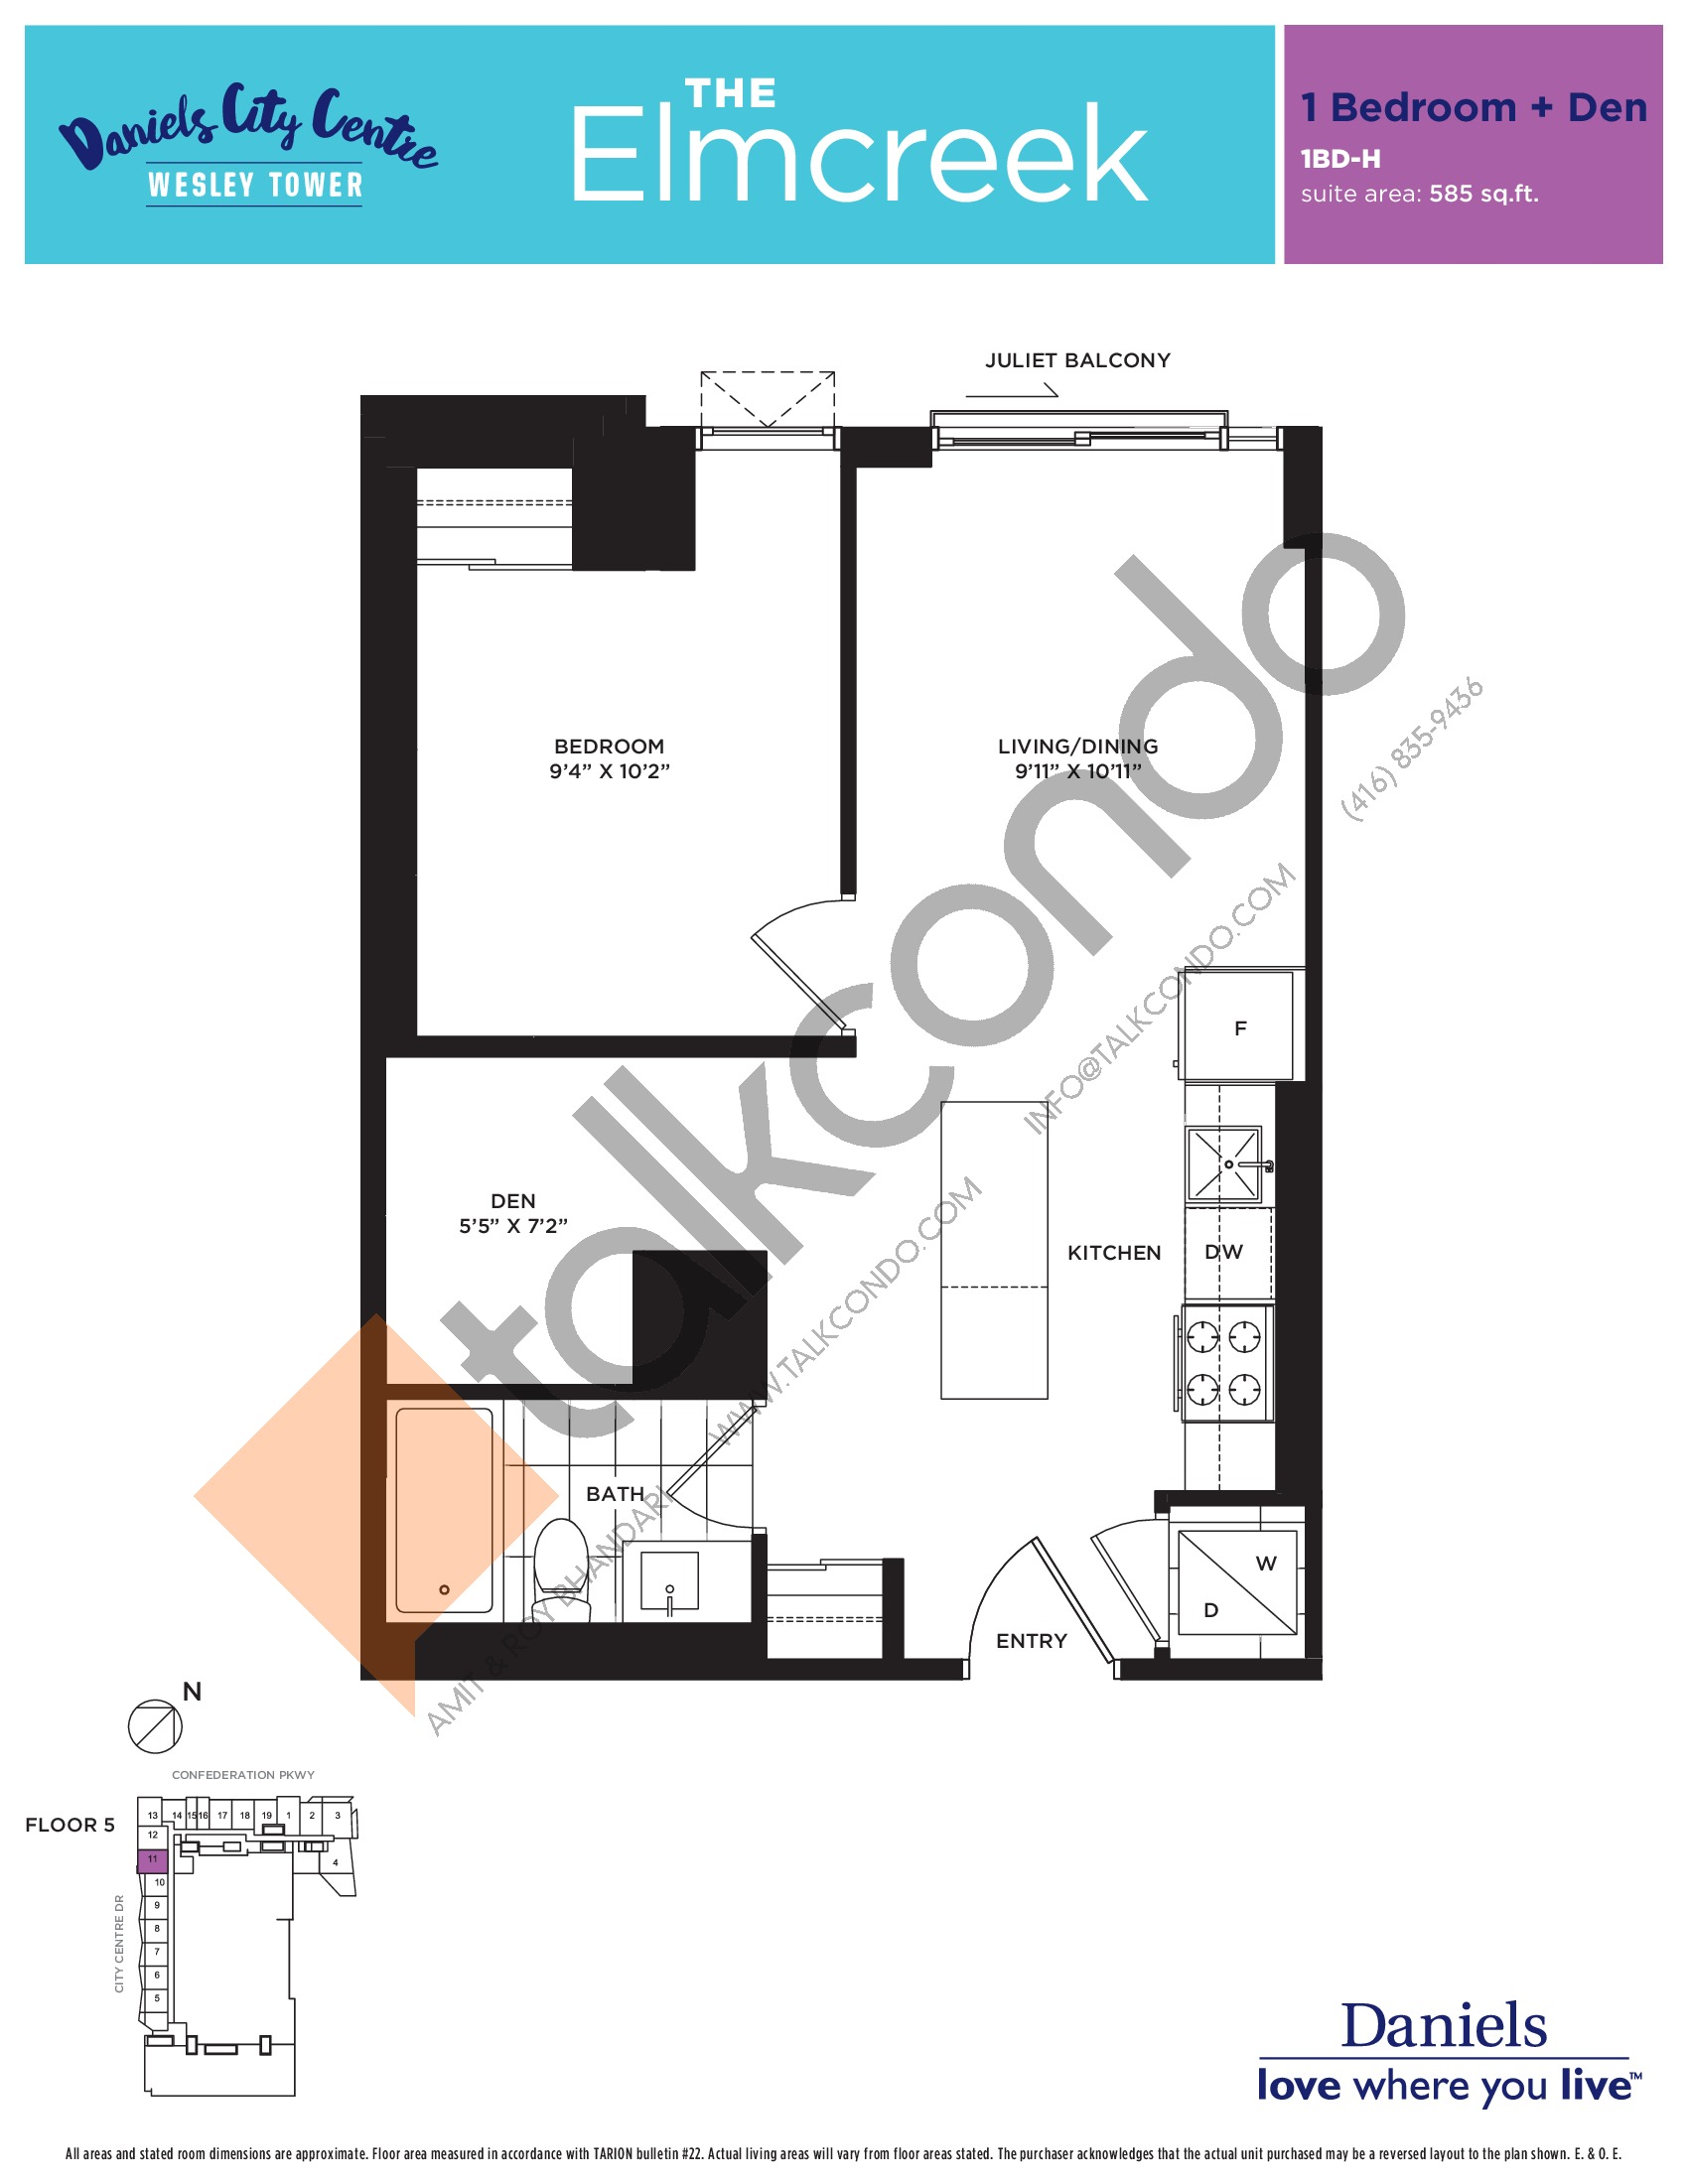 The Elmcreek Floor Plan at The Wesley Tower at Daniels City Centre Condos - 585 sq.ft